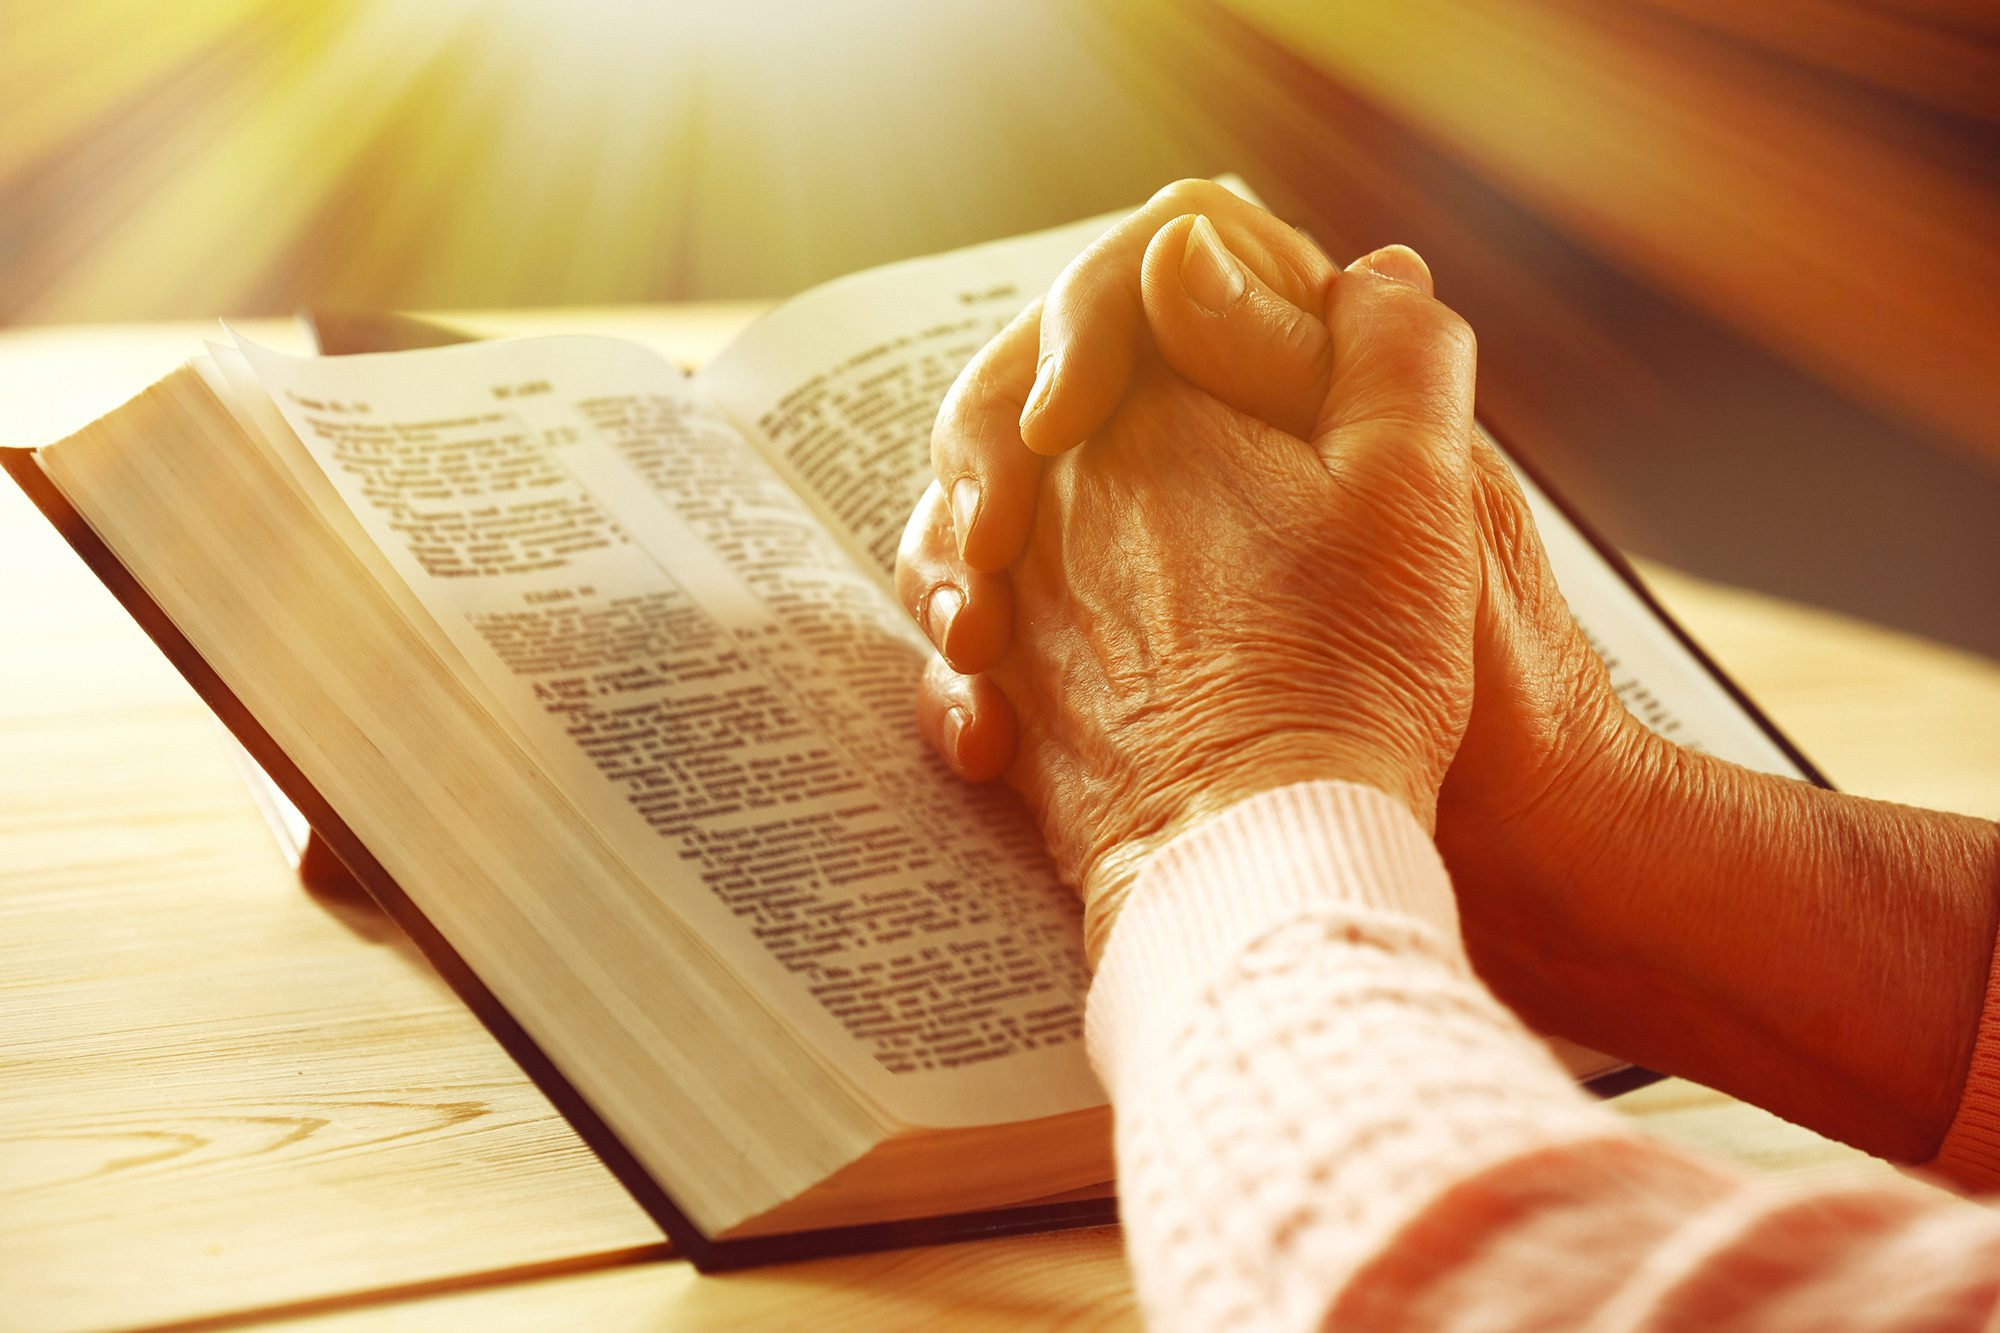 Clasped hands over a Bible indicate this person is praying.